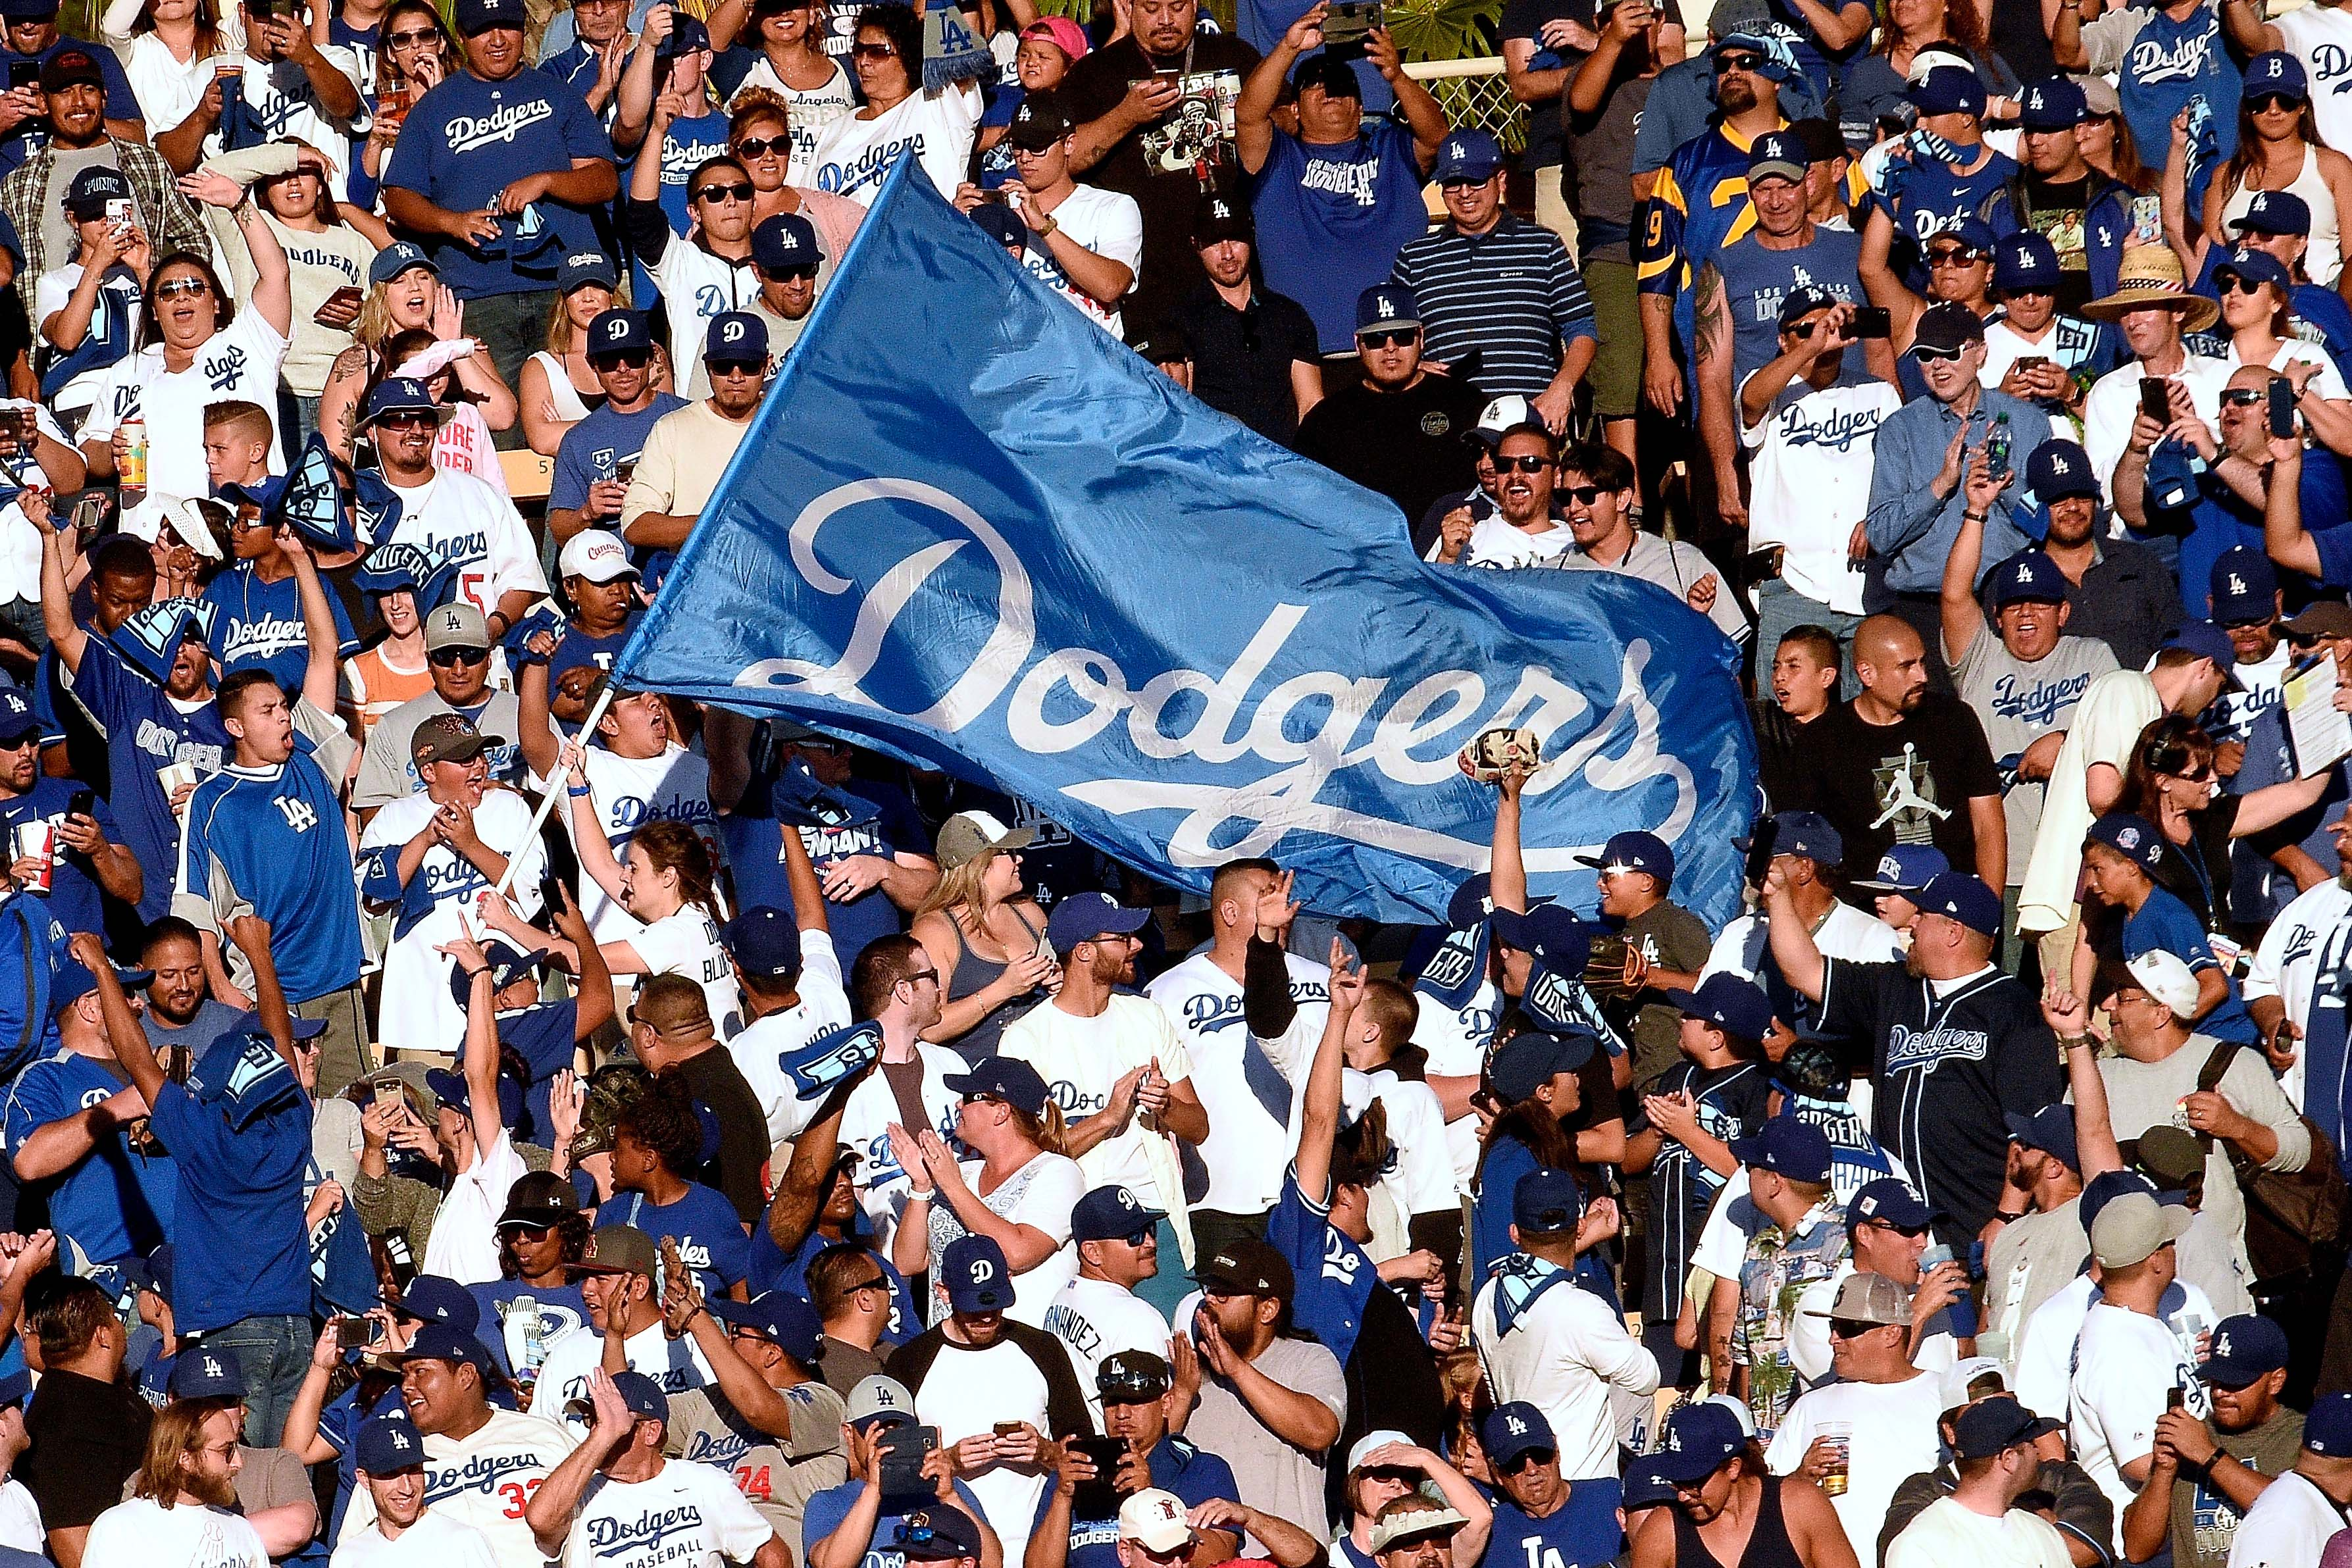 LOS ANGELES, CA - OCTOBER 17: Los Angeles Dodgers fans cheer during the eighth inning against the Milwaukee Brewers in Game Five of the National League Championship Series at Dodger Stadium on October 17, 2018 in Los Angeles, California. (Photo by Kevork Djansezian/Getty Images)